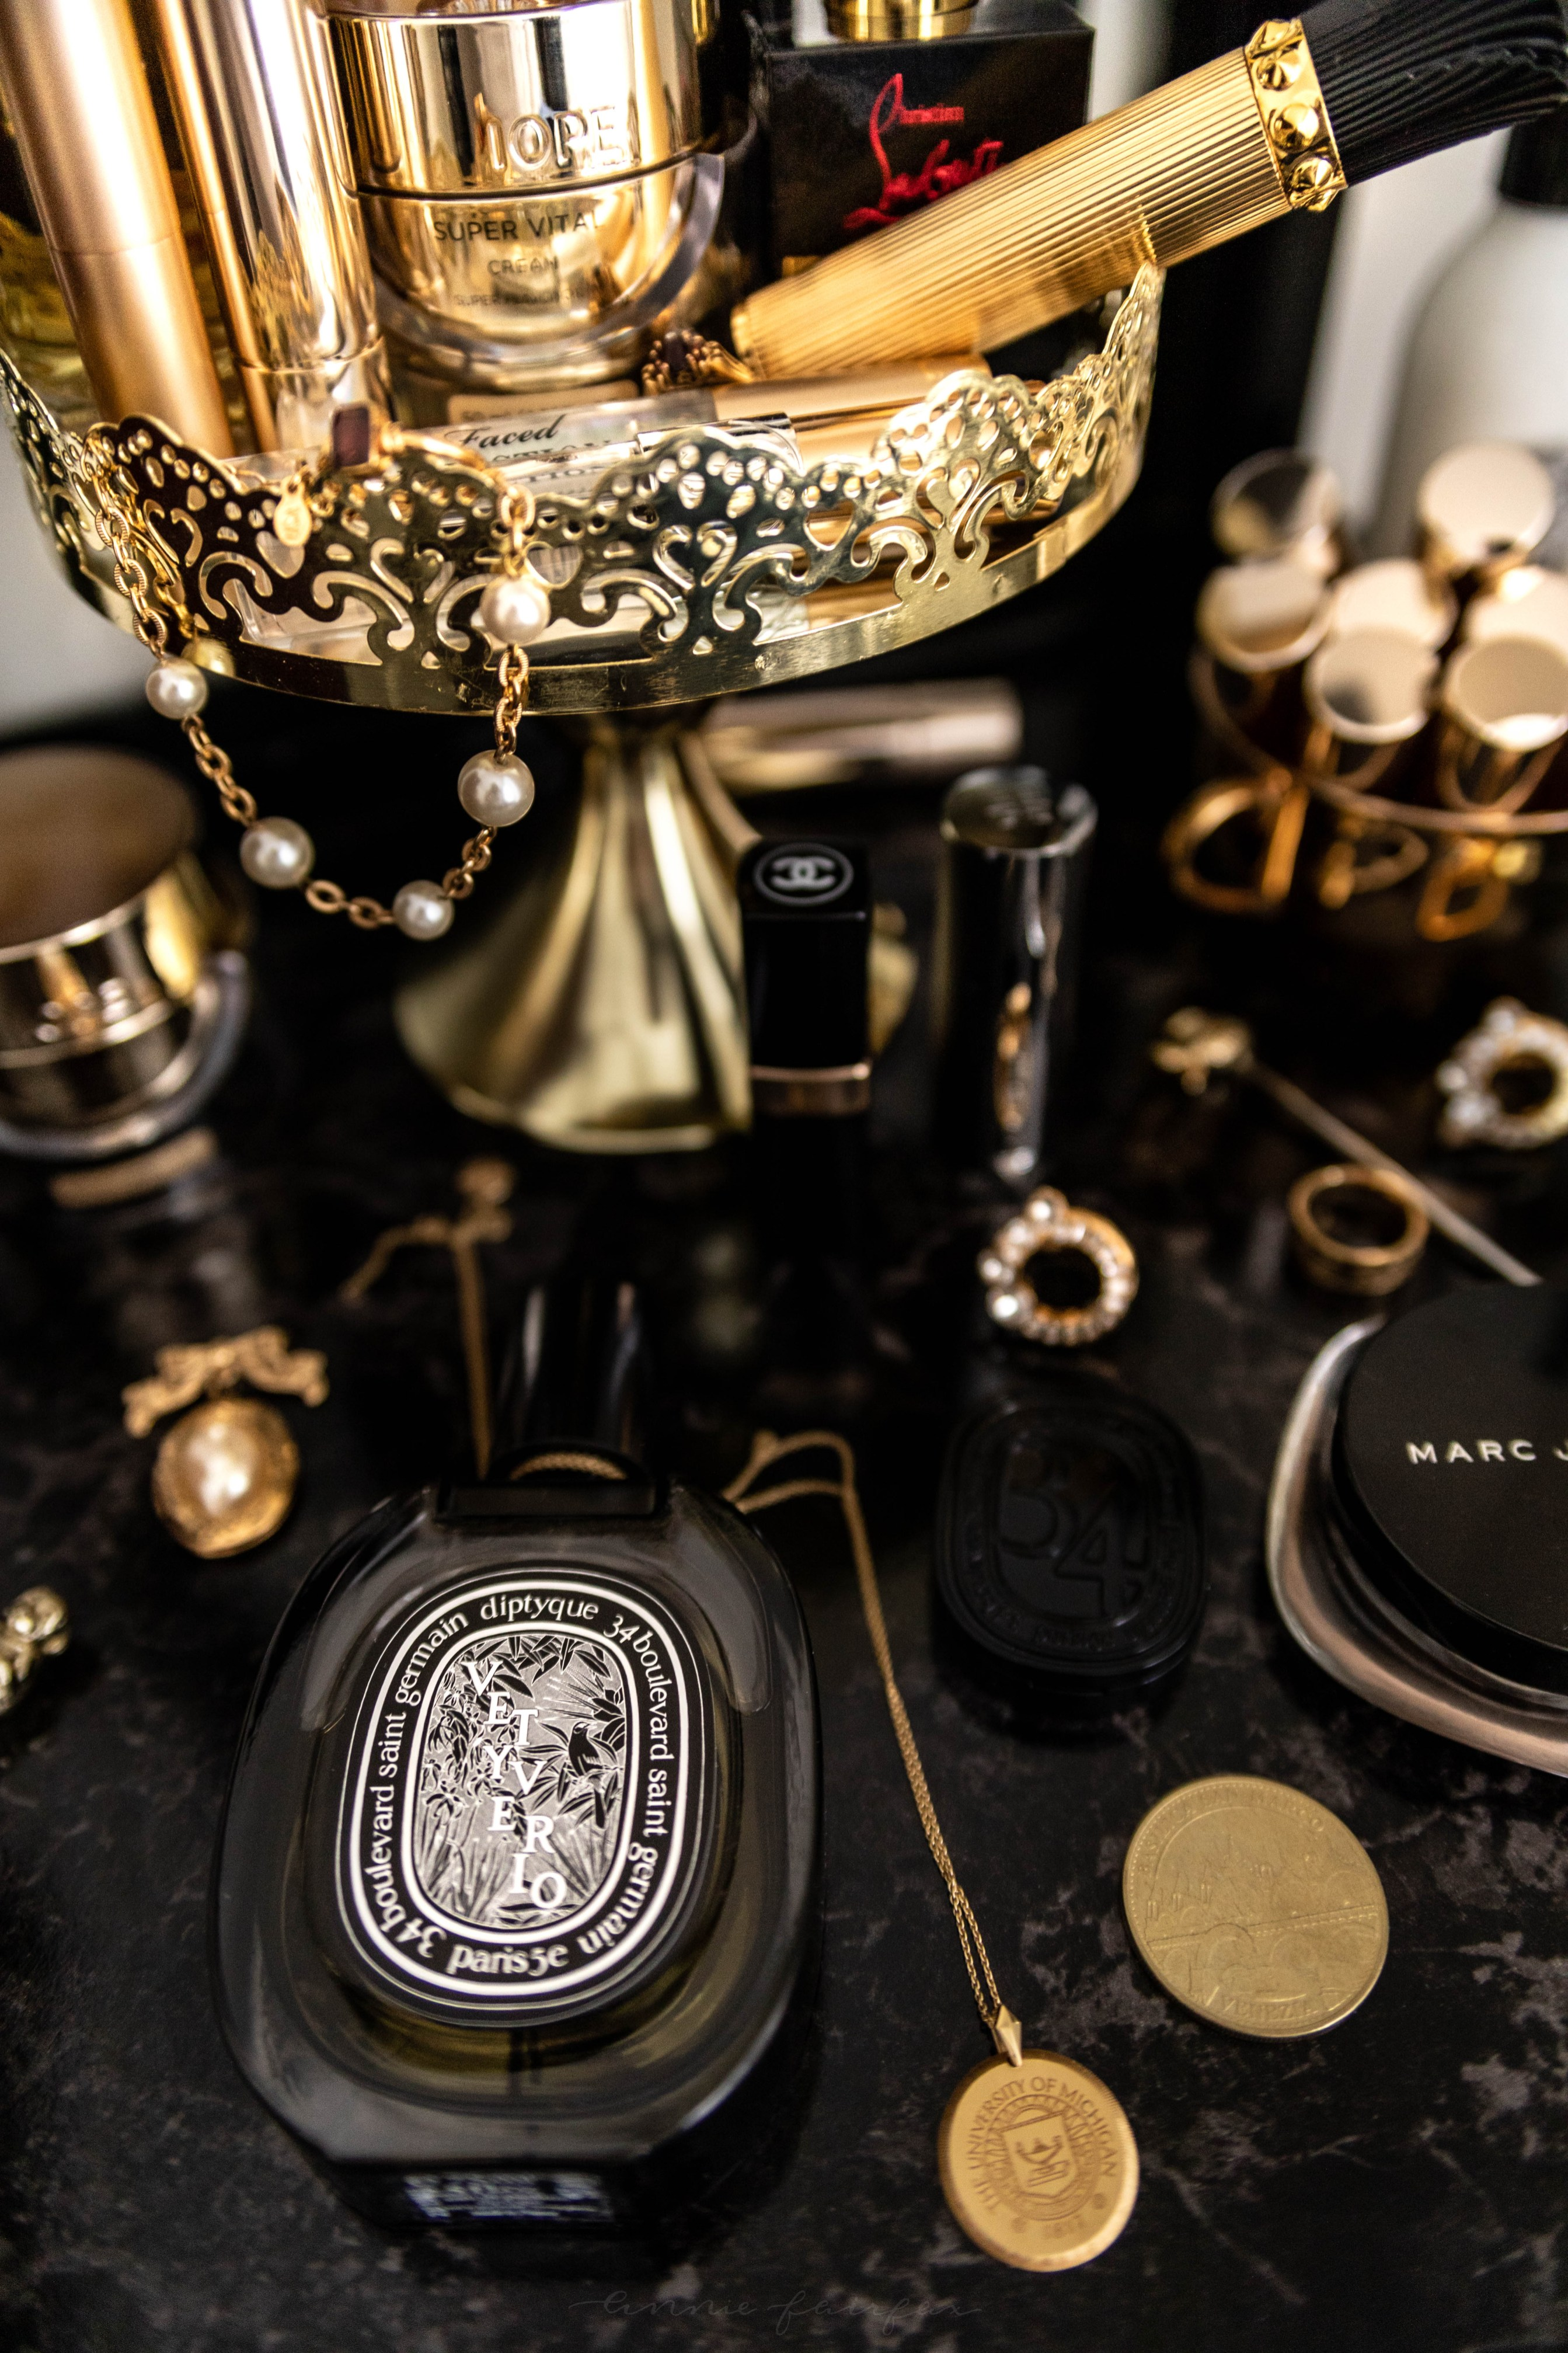 Luxury Beauty Favourites Diptyque, Chanel, Yves Saint Laurent, YSL, Marc Jacobs, Clarins, Iope, Too Faced, Guerlain, Christian Louboutin